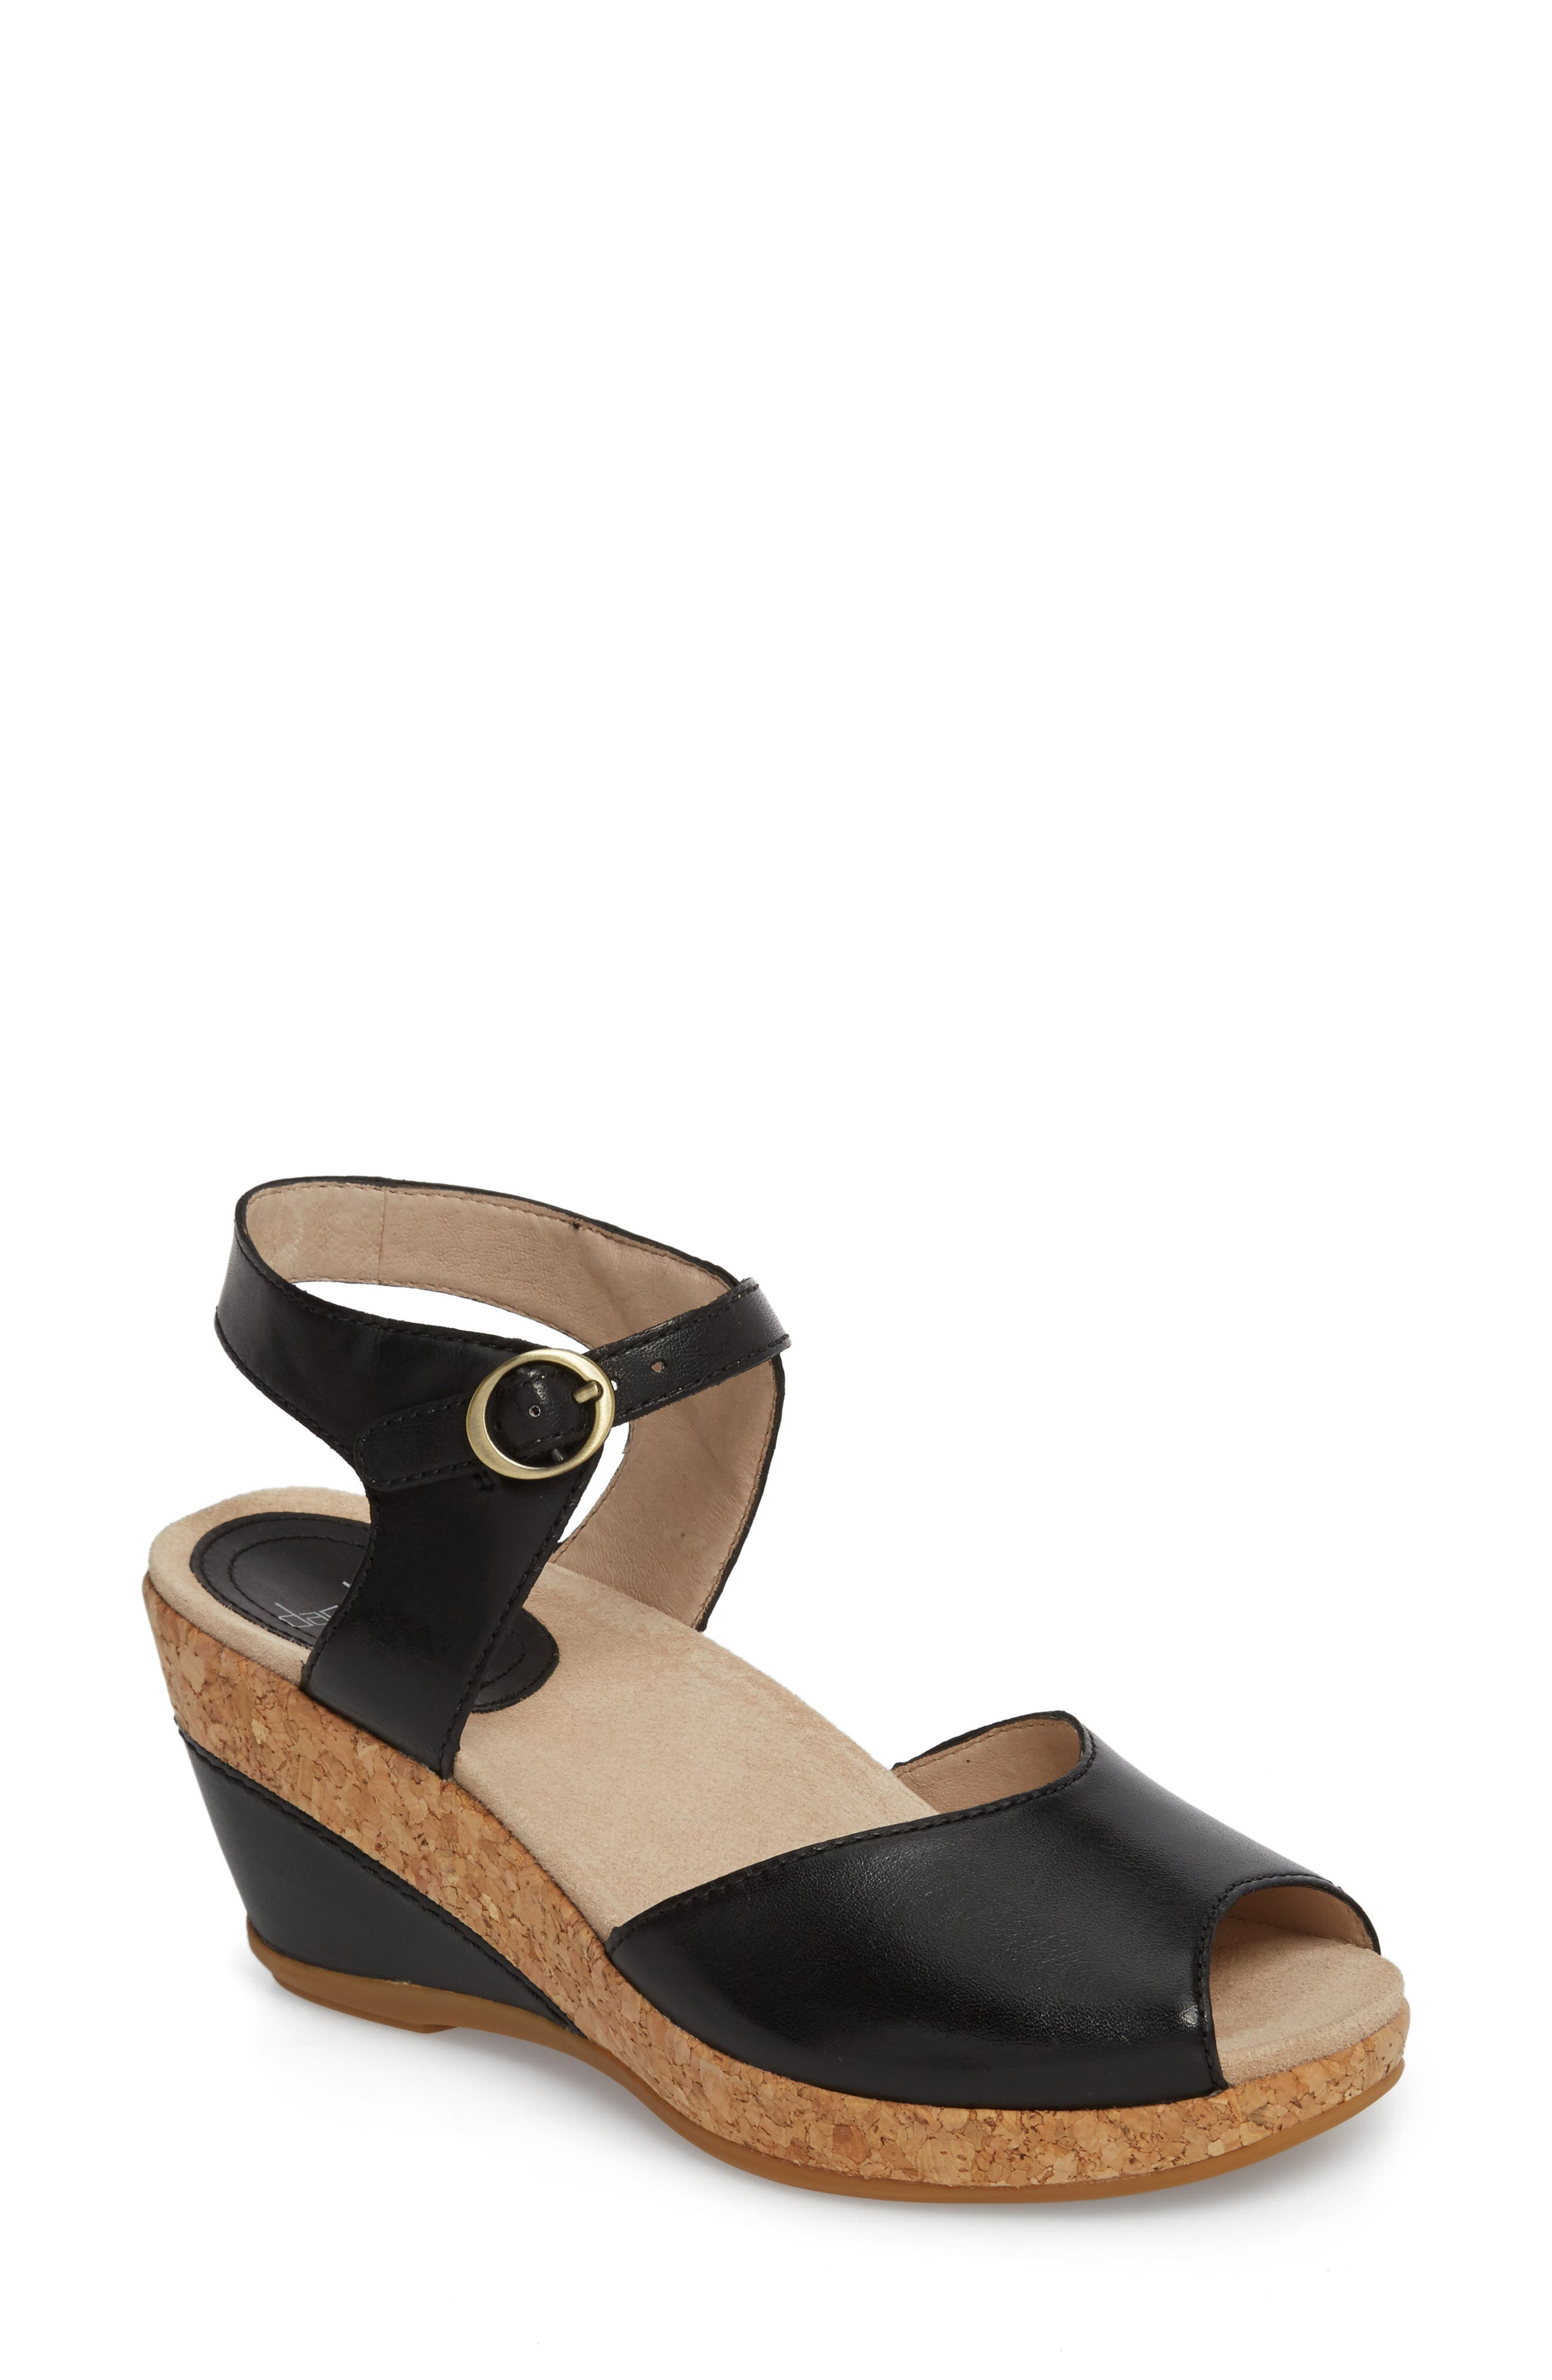 Wedge Sandal,                         Main,                         color, 001